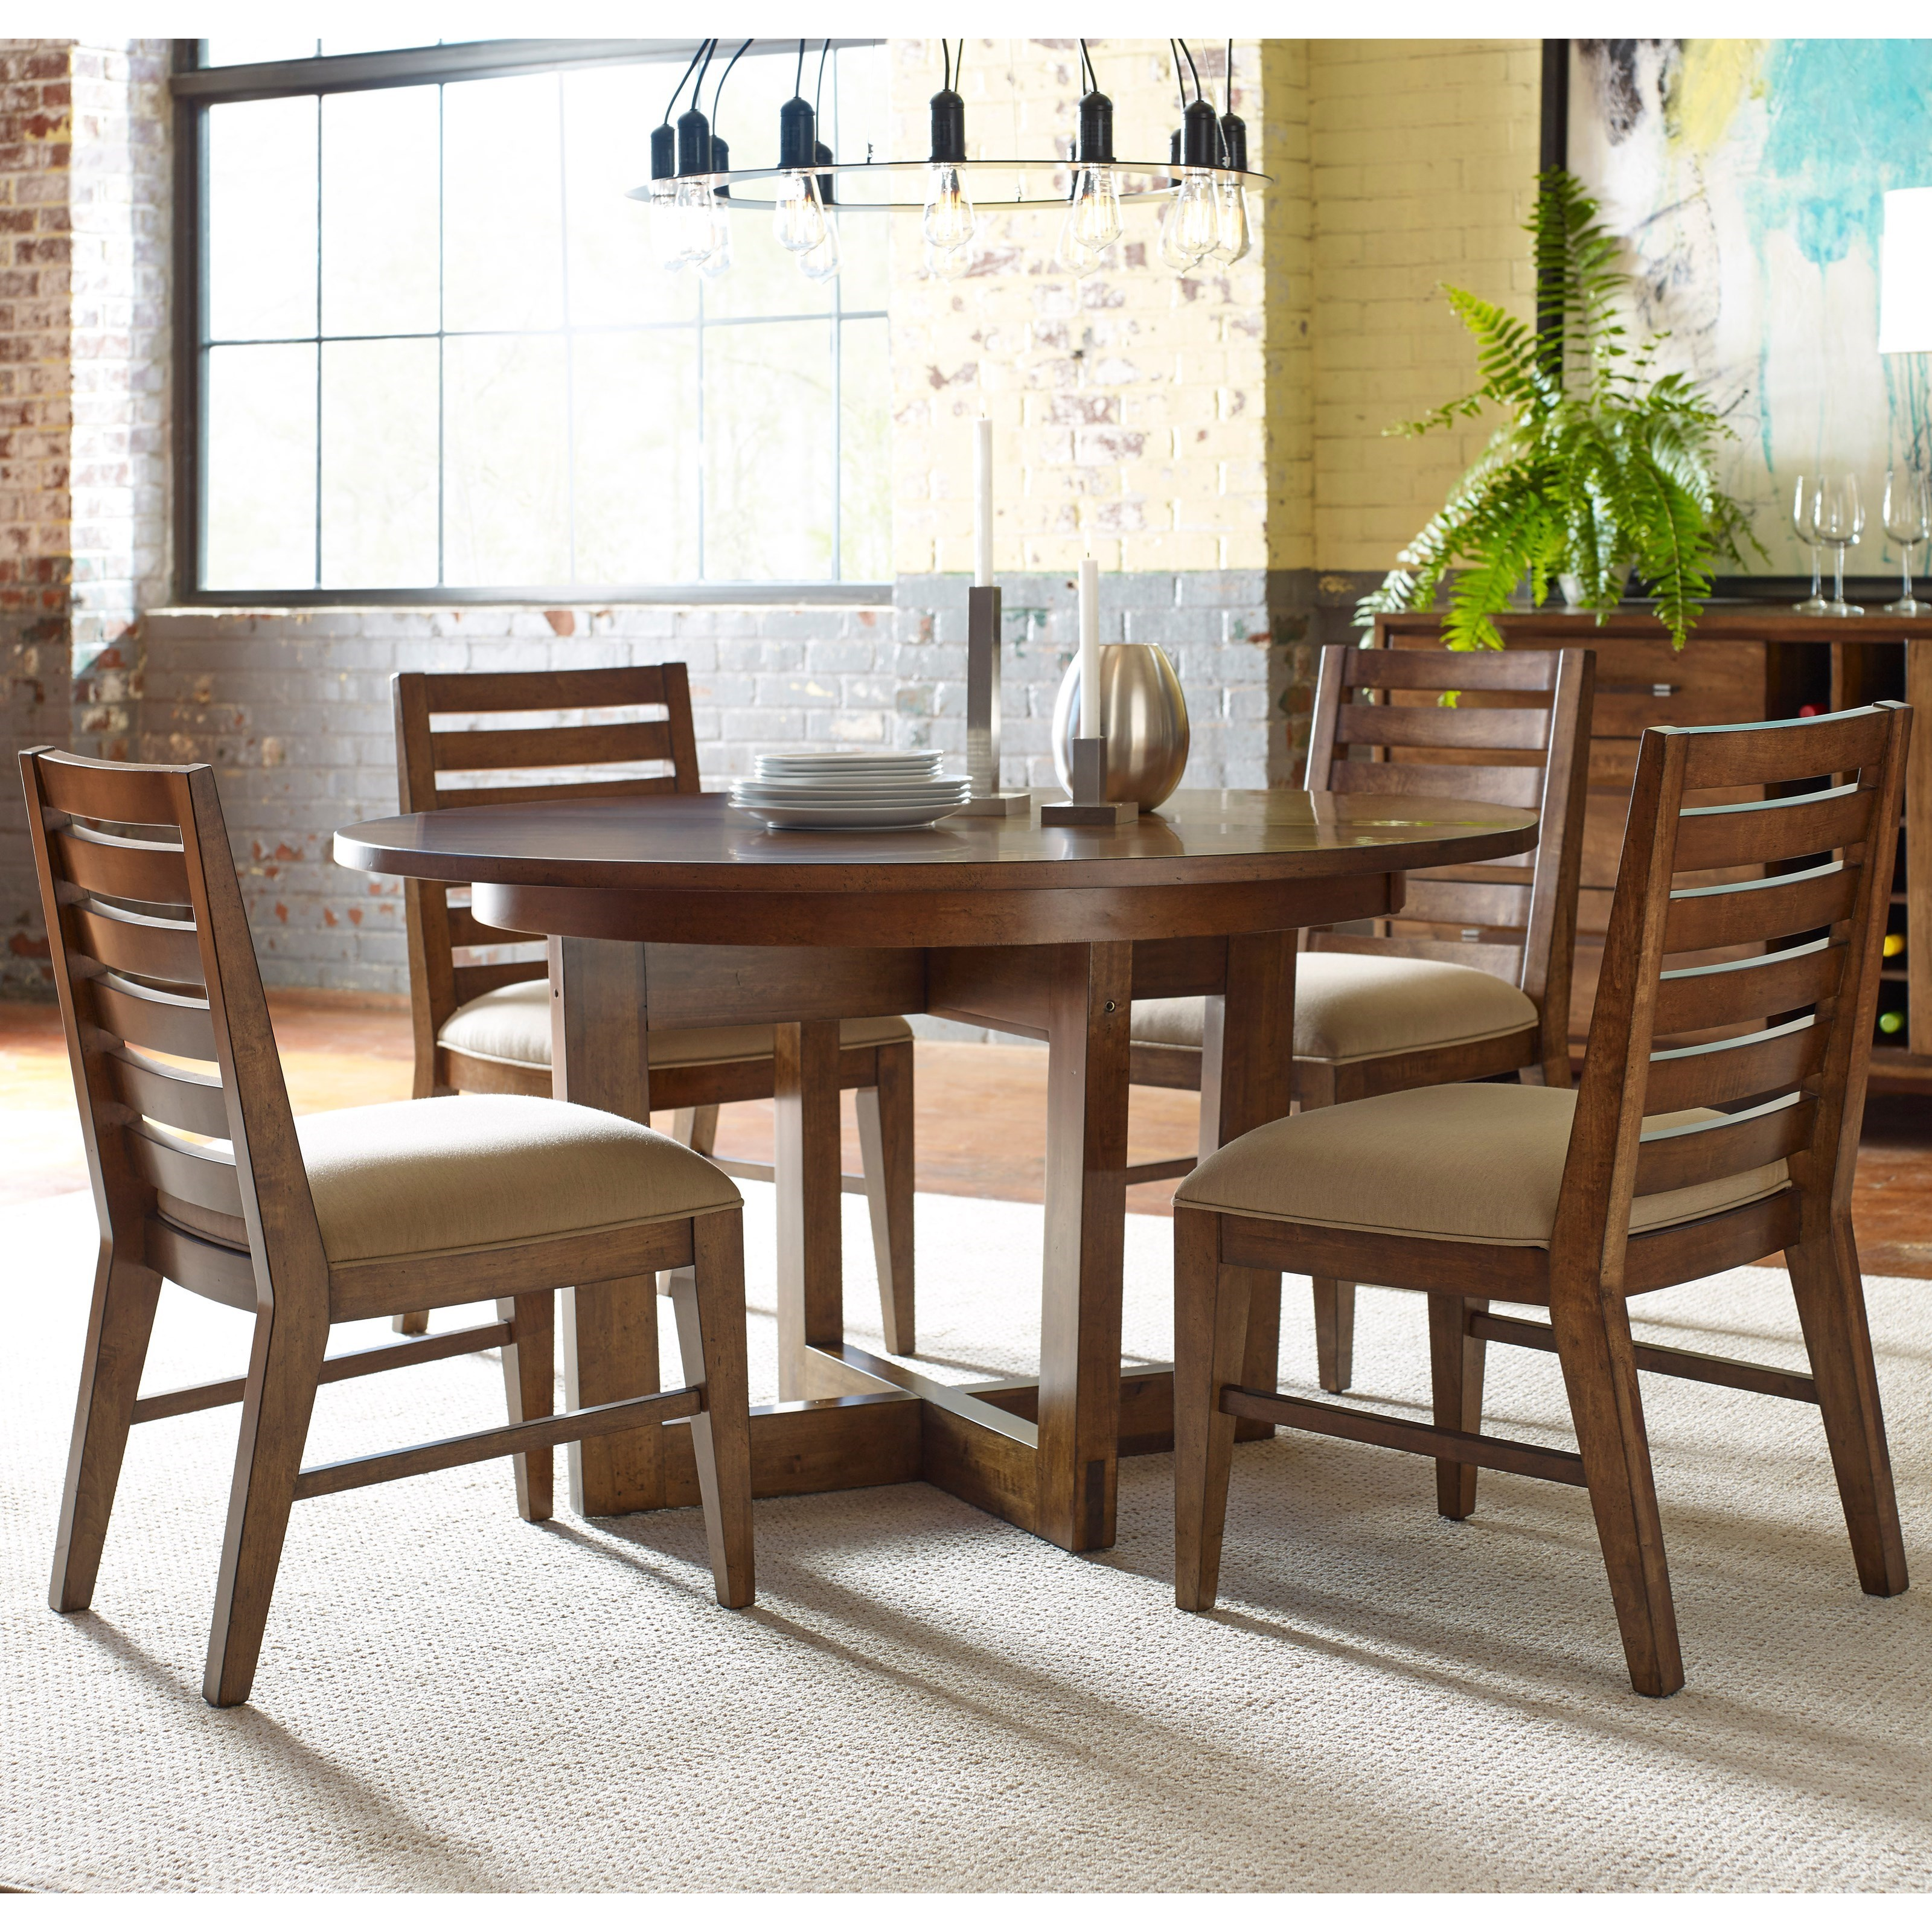 Dining Room Sets Johnny Janosik